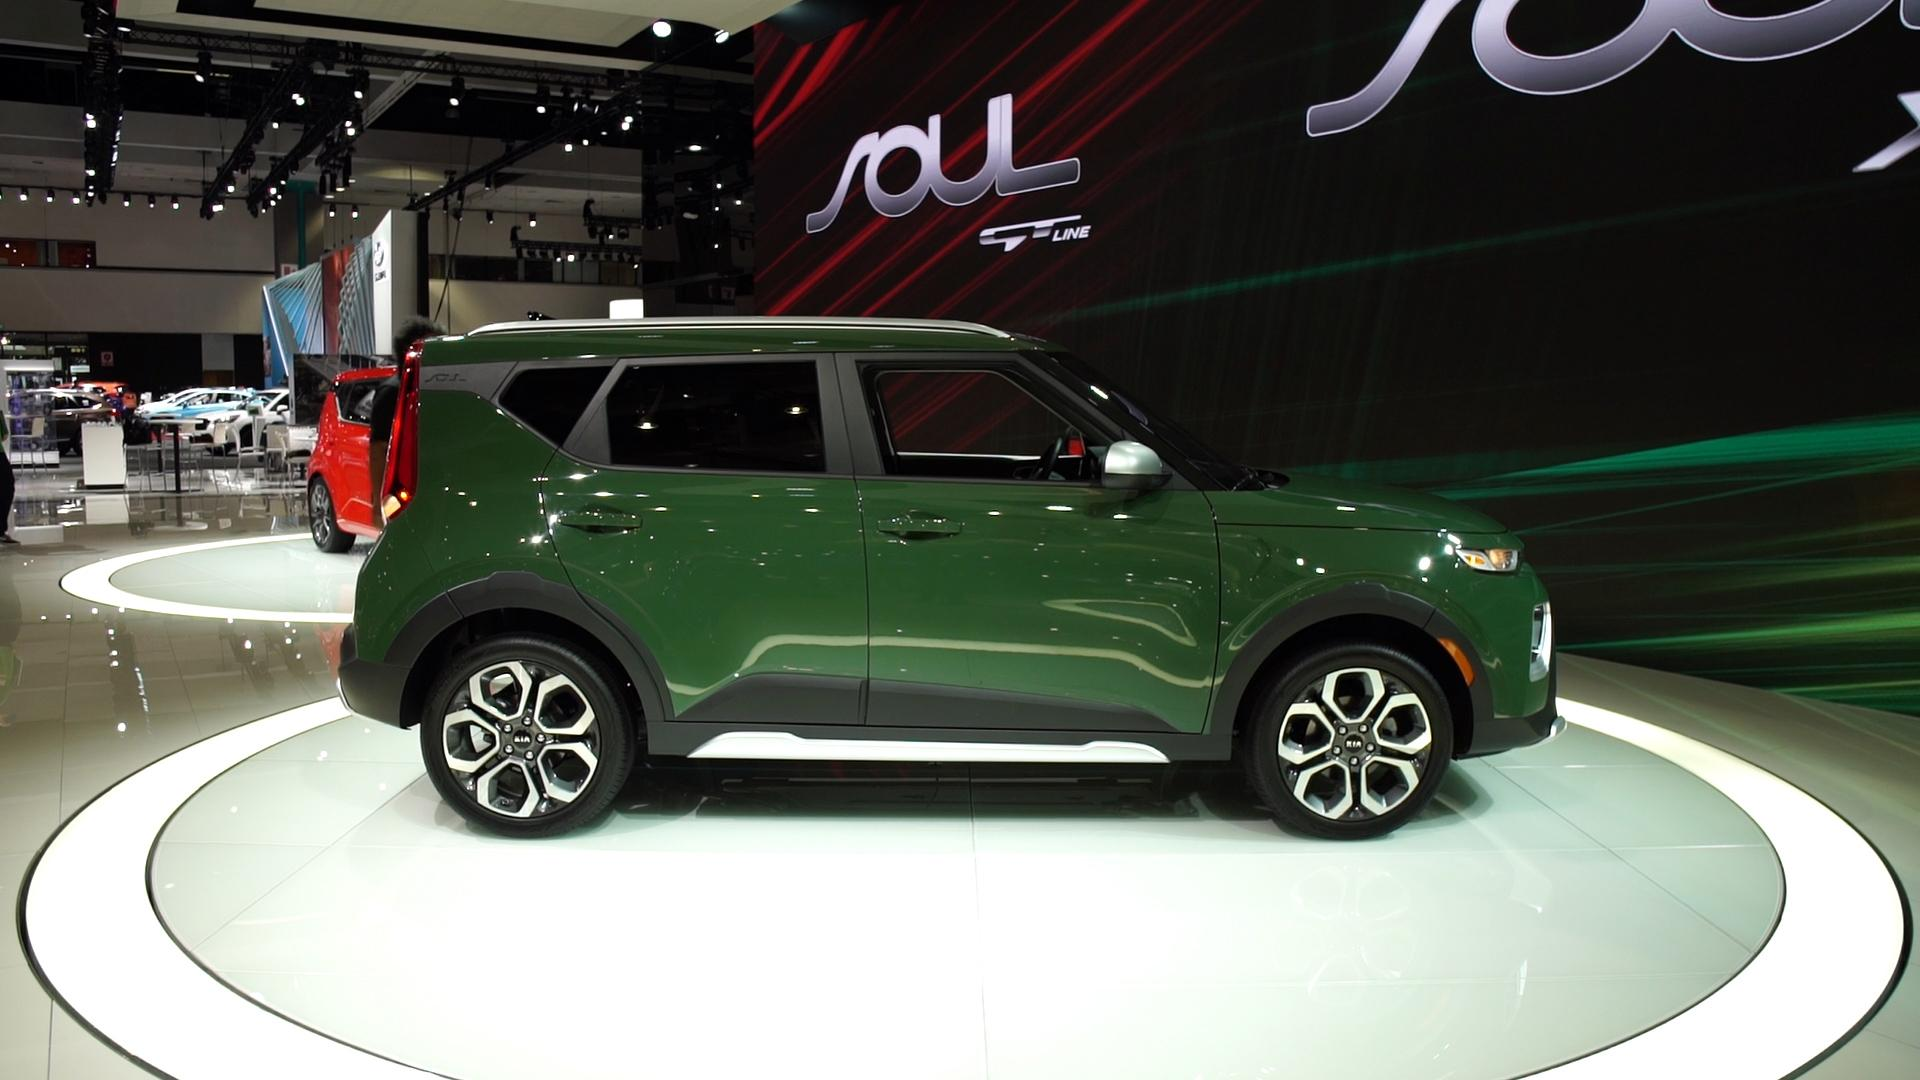 2020 All Kia Soul Awd Images